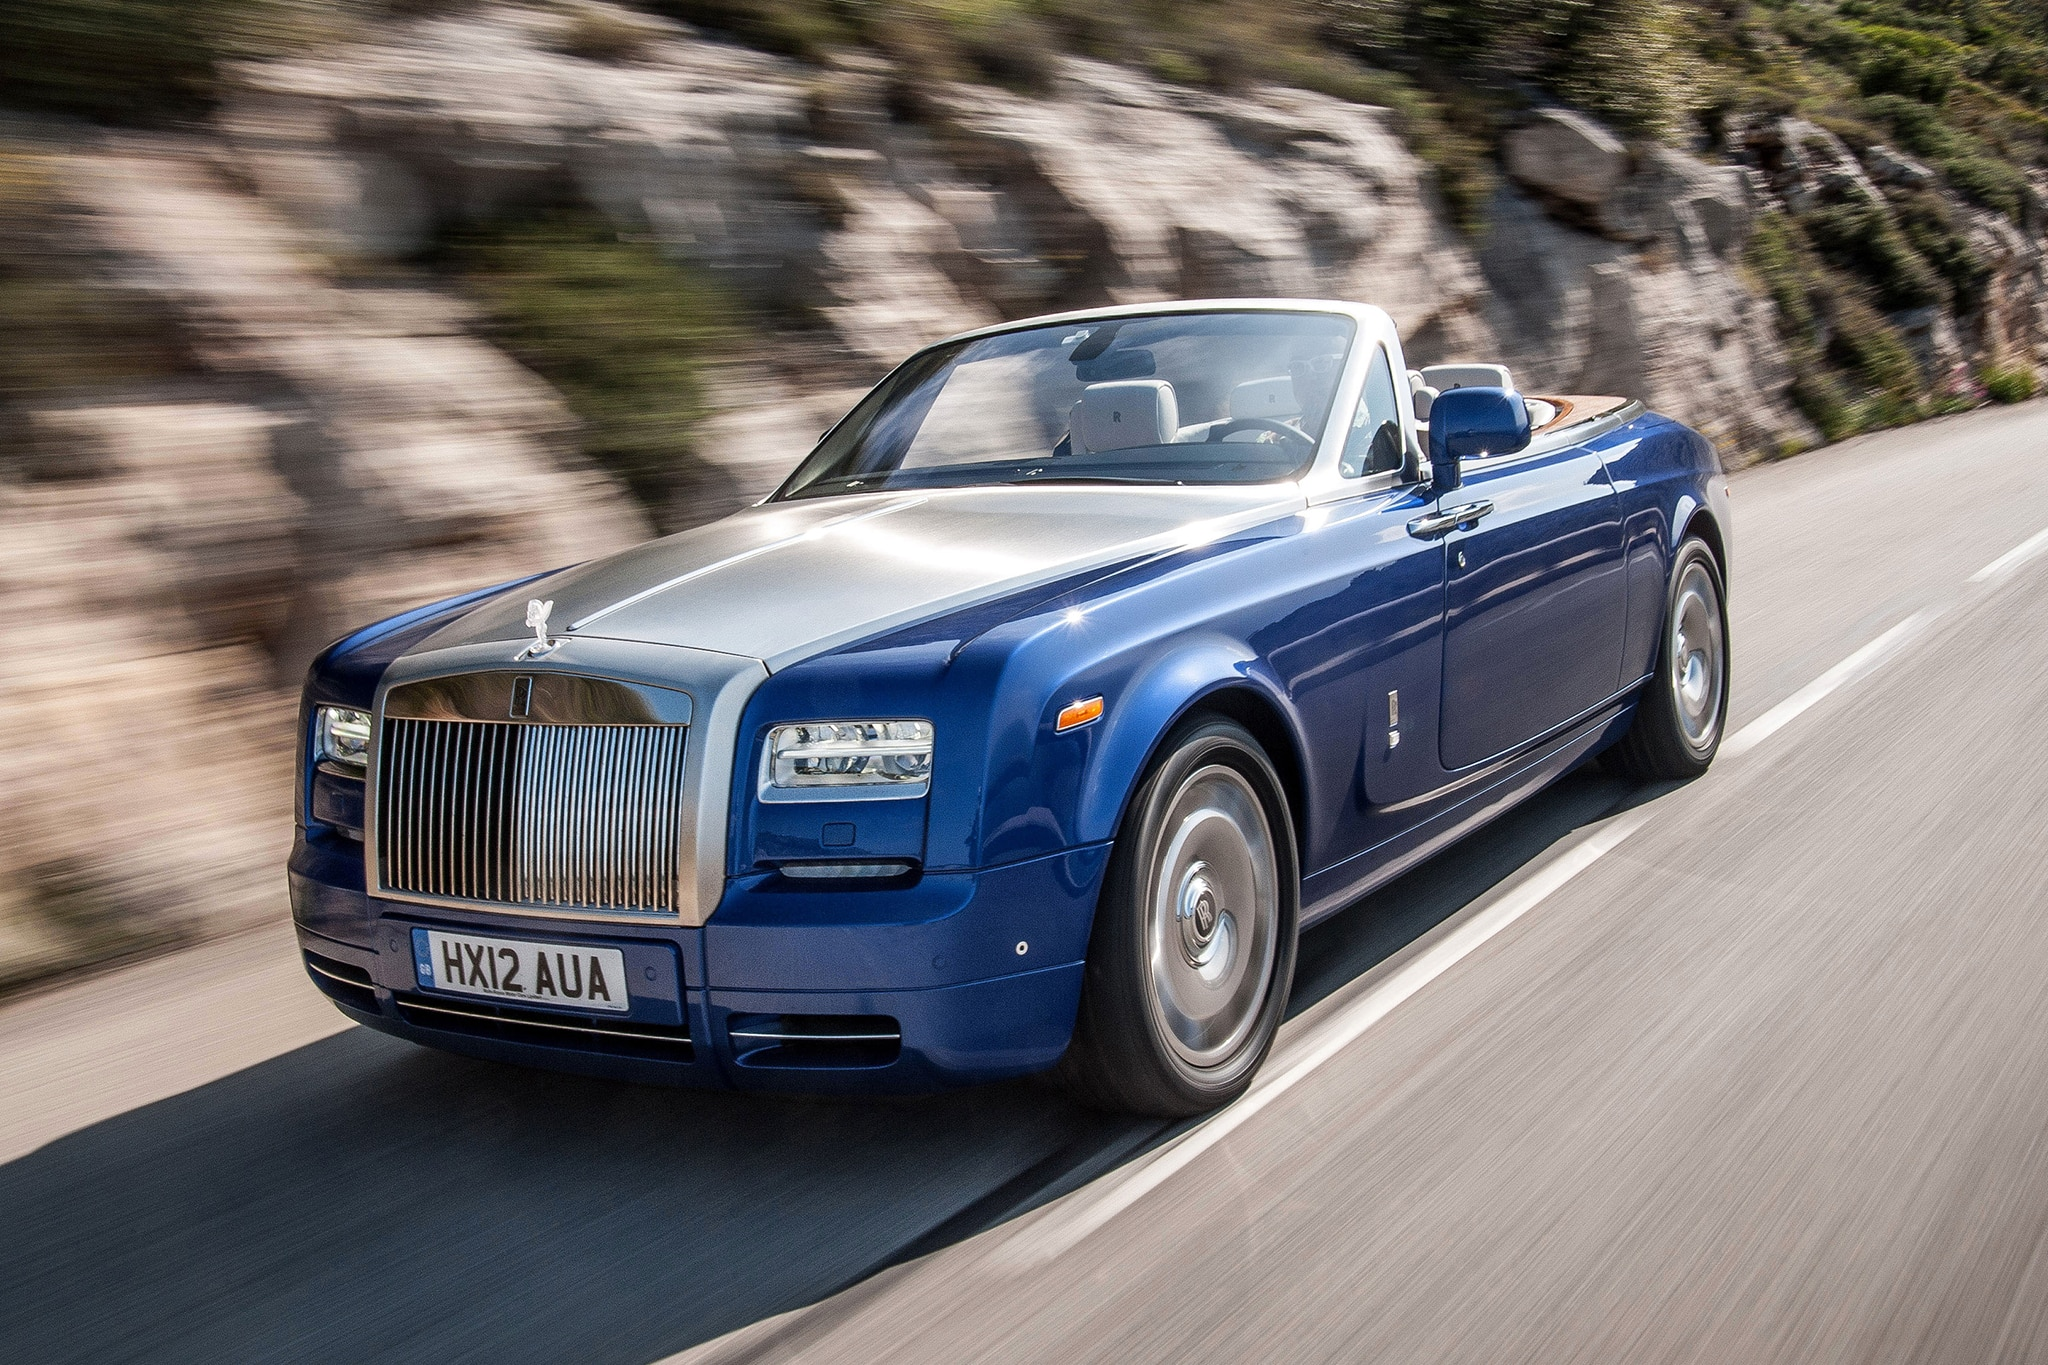 rolls royce bespoke creates maharaja drophead coupe. Black Bedroom Furniture Sets. Home Design Ideas